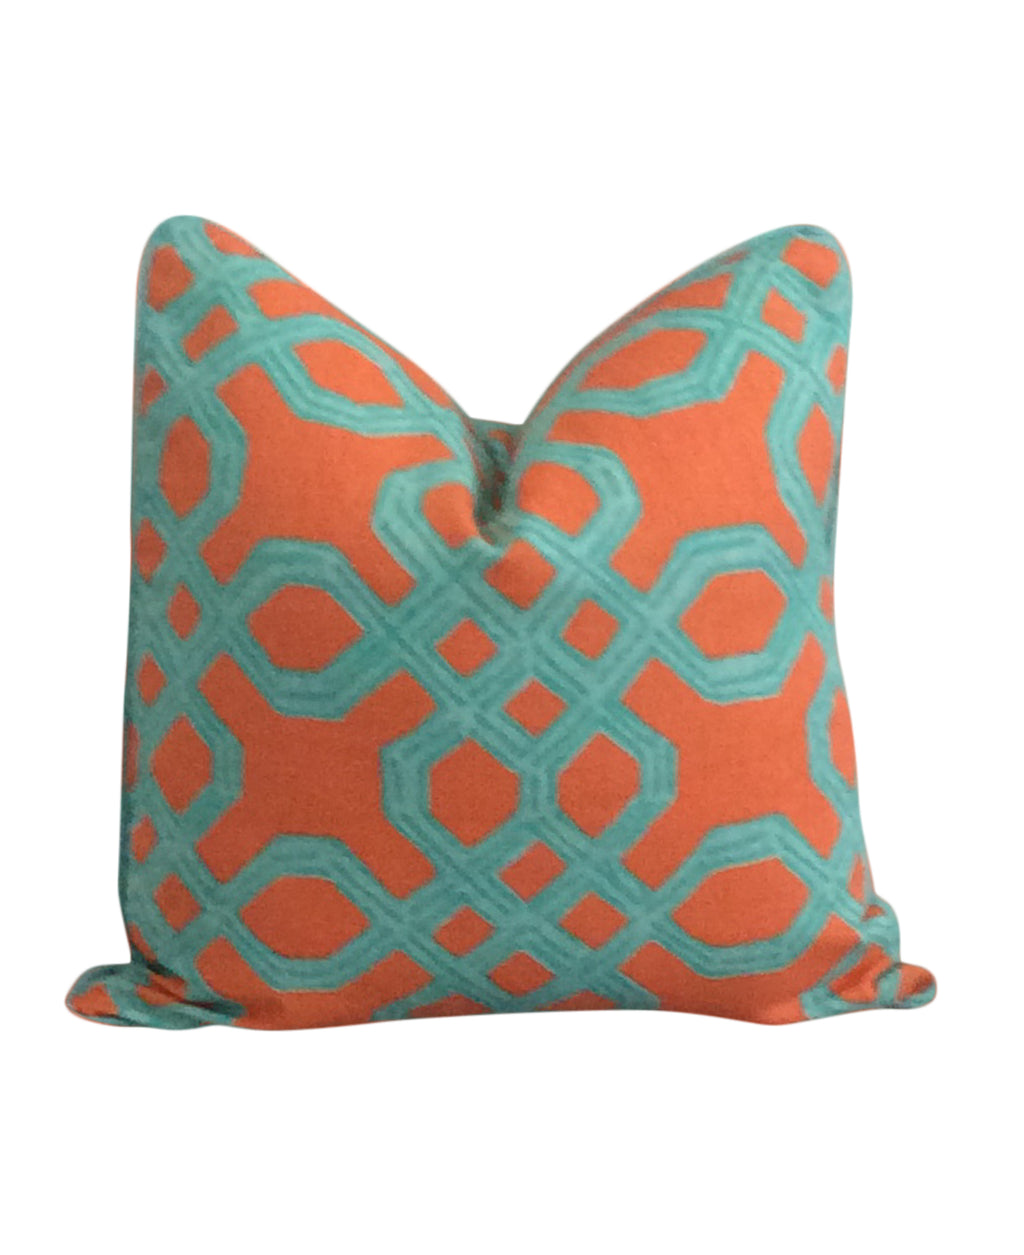 Lilly Pulitzer Well Connected Orange Fabric Pillow Cover